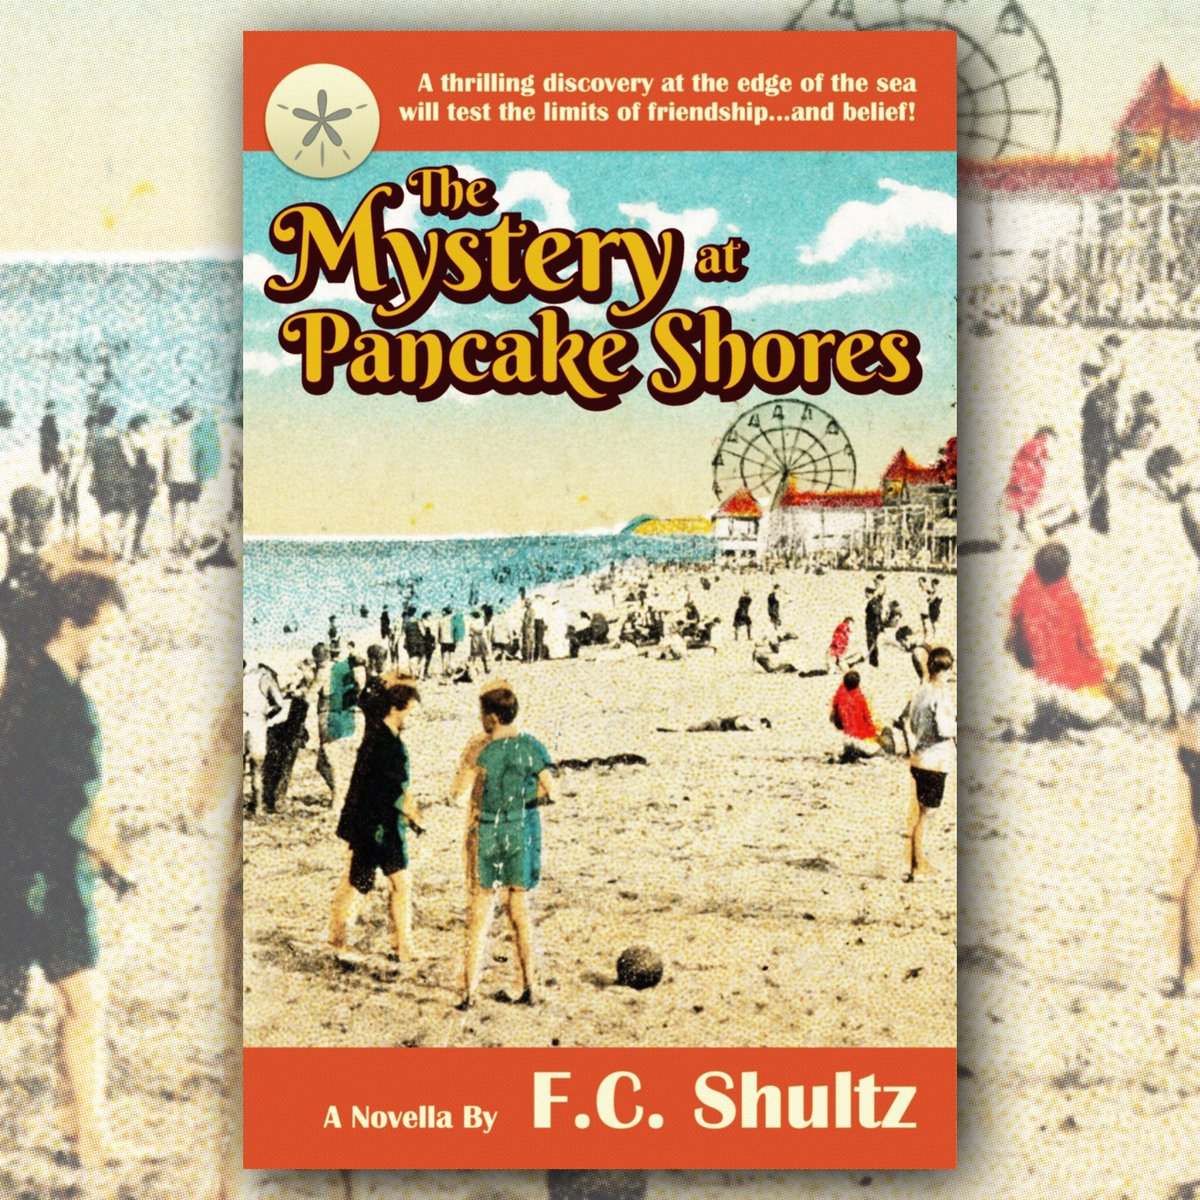 The Mystery at Pancake Shores